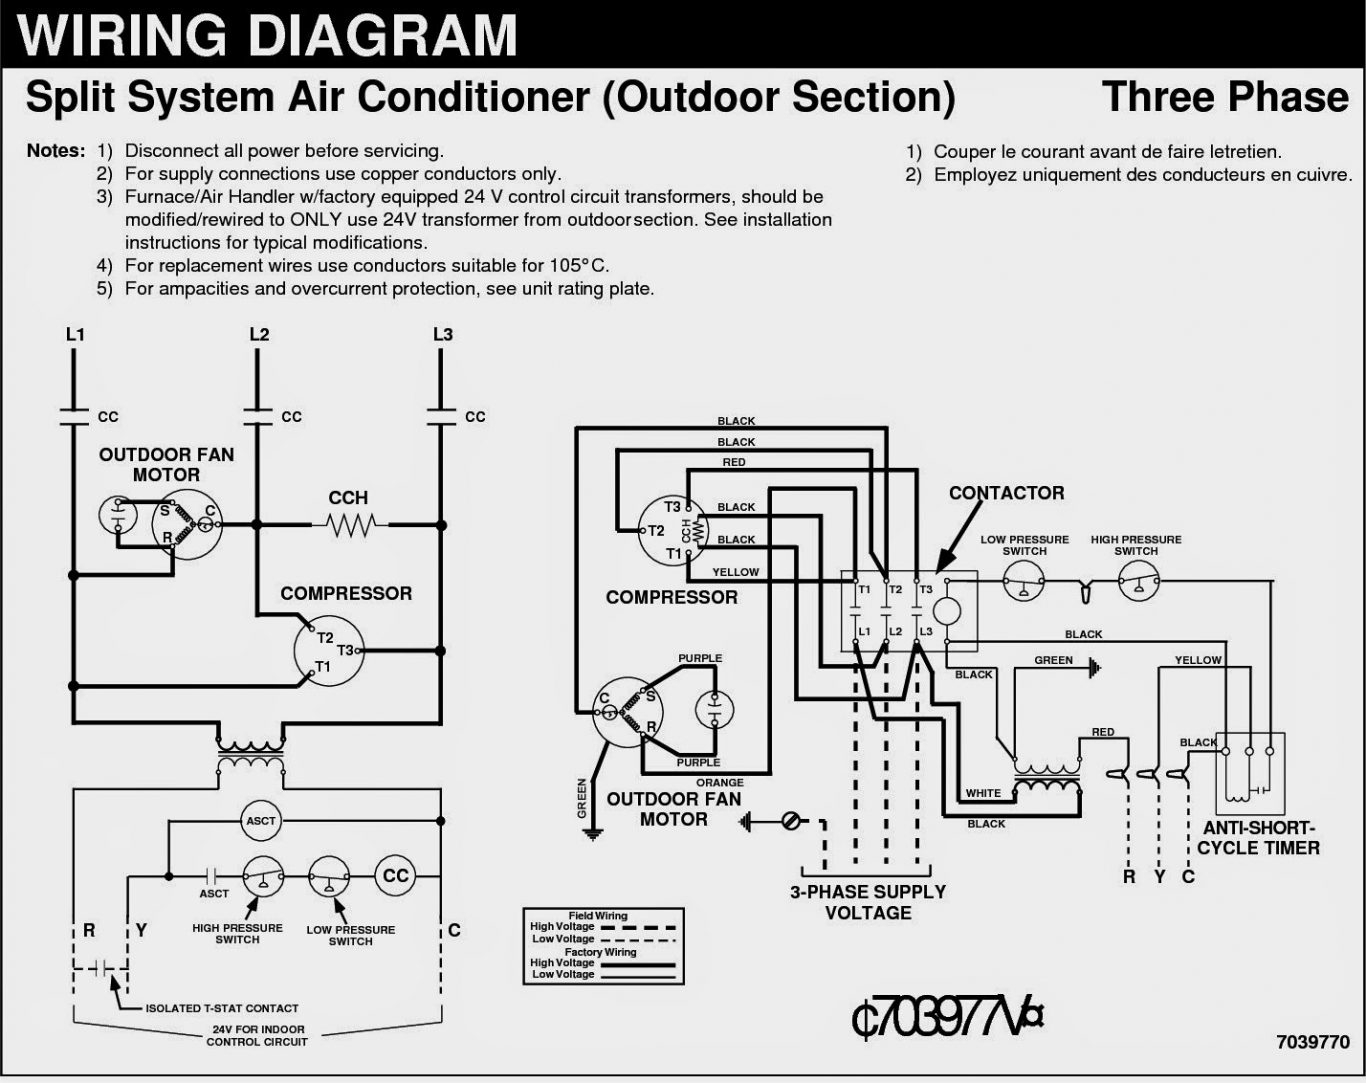 1971 chevy c20 wiring diagram toshiba c20 wiring diagram contactor vita spa l200 wiring diagram gallery #7